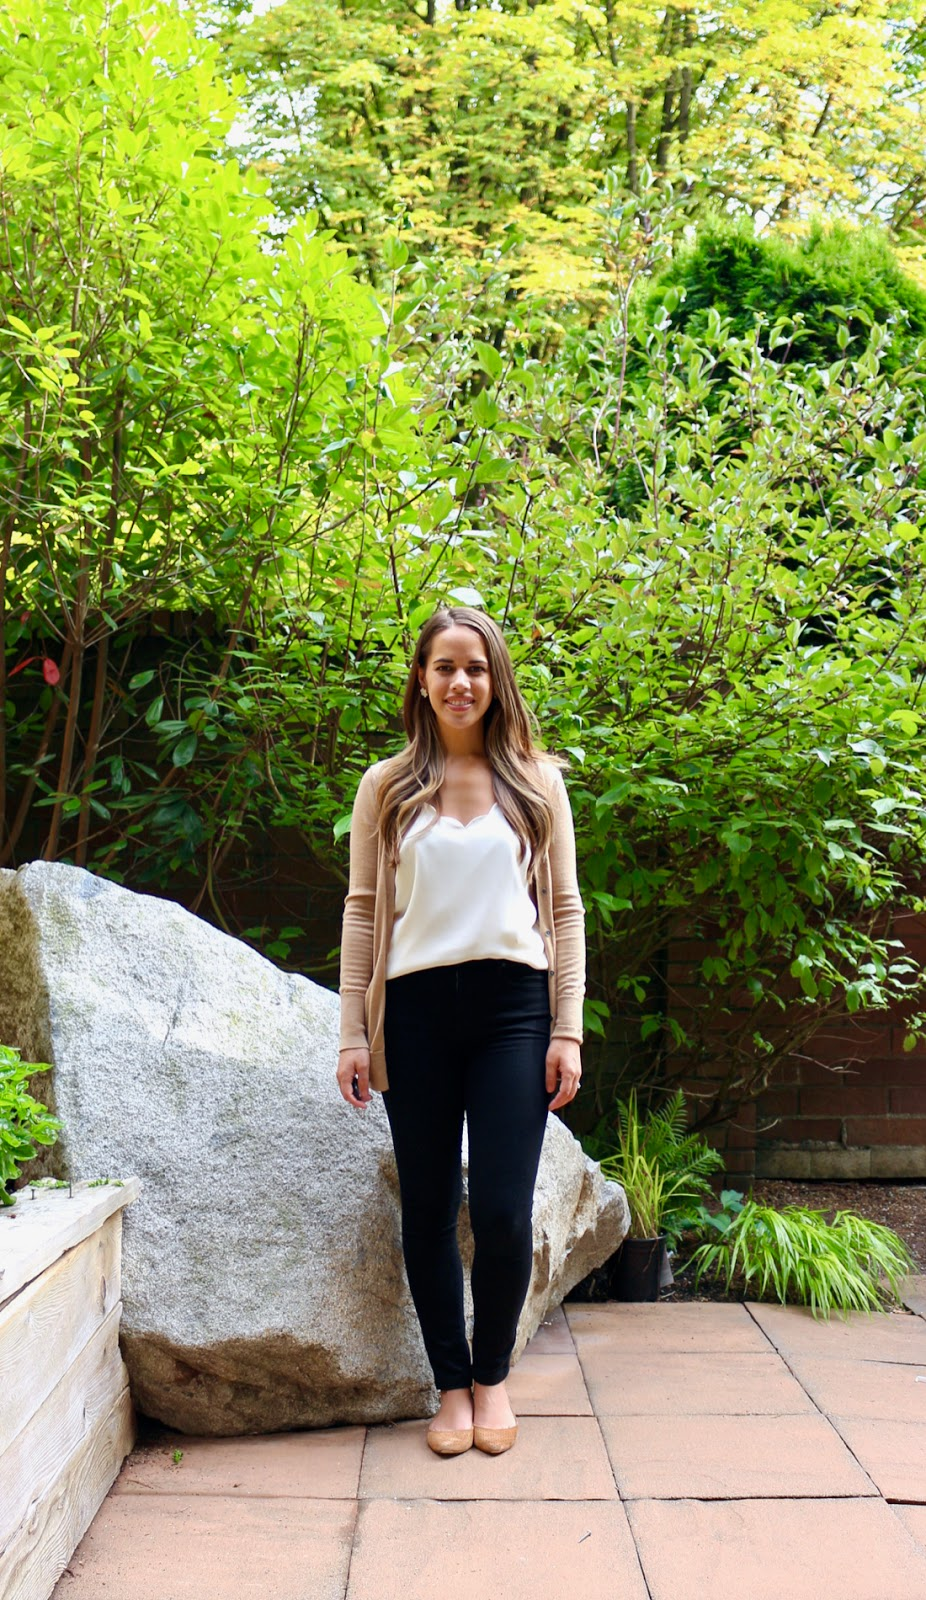 Jules in Flats - J.Crew Factory Scalloped Cami with Black Skinny Jeans (Business Casual Spring Workwear on a Budget)